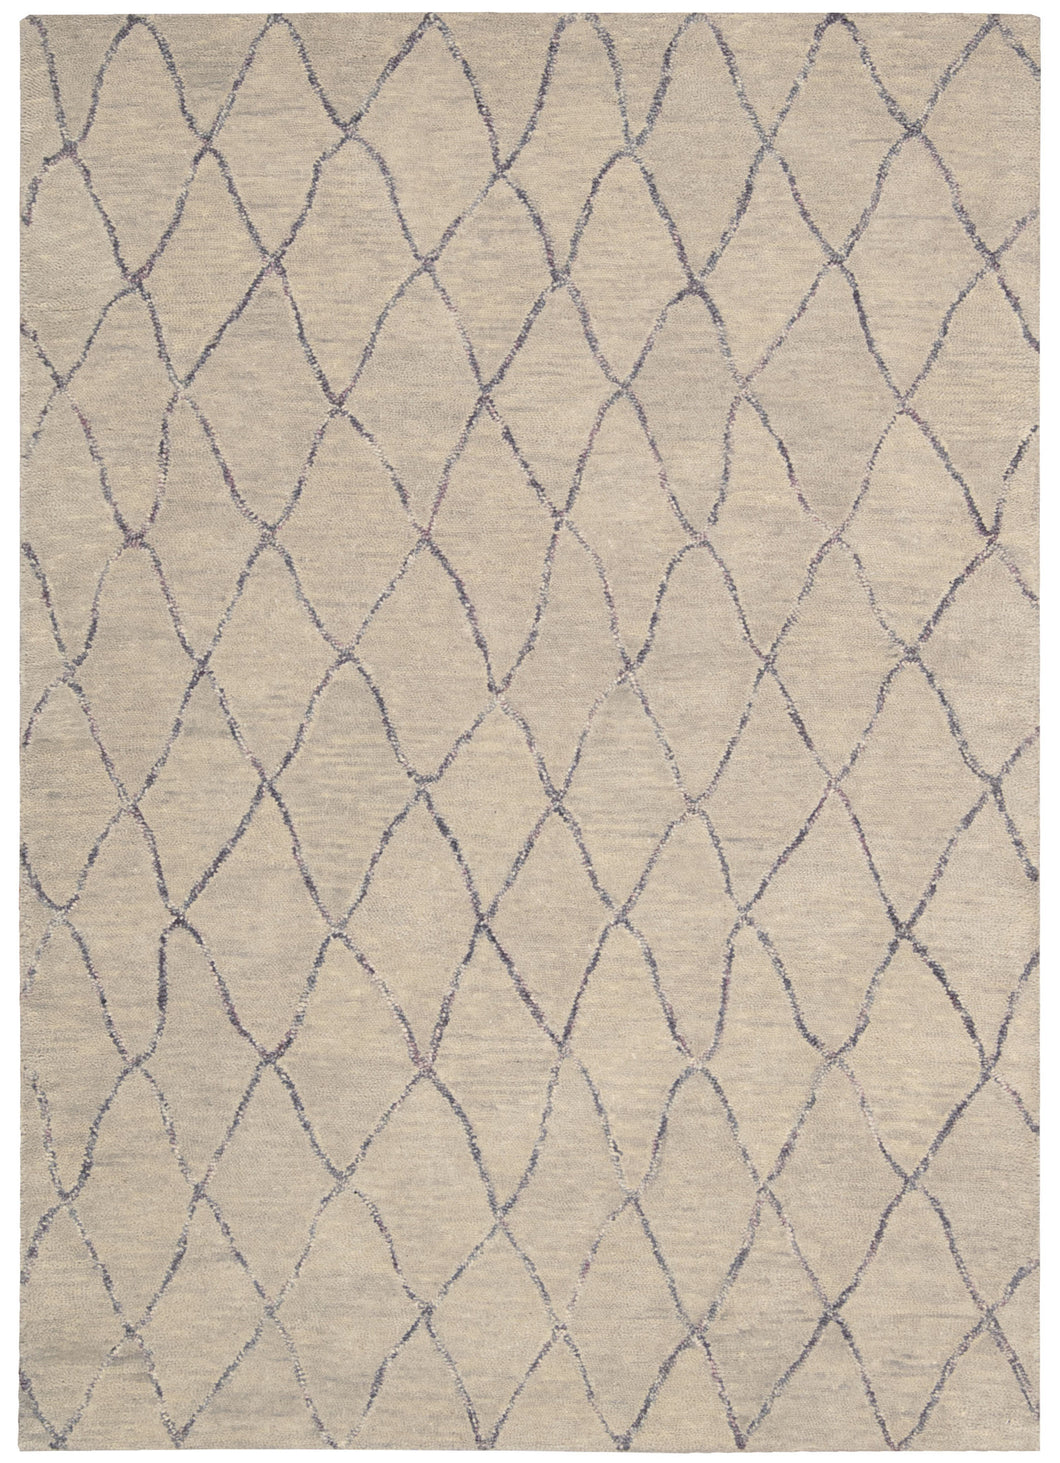 Barclay Butera Intermix Driftwood Area Rug By Nourison INT02 DRIWD (Rectangle) | BOGO USA